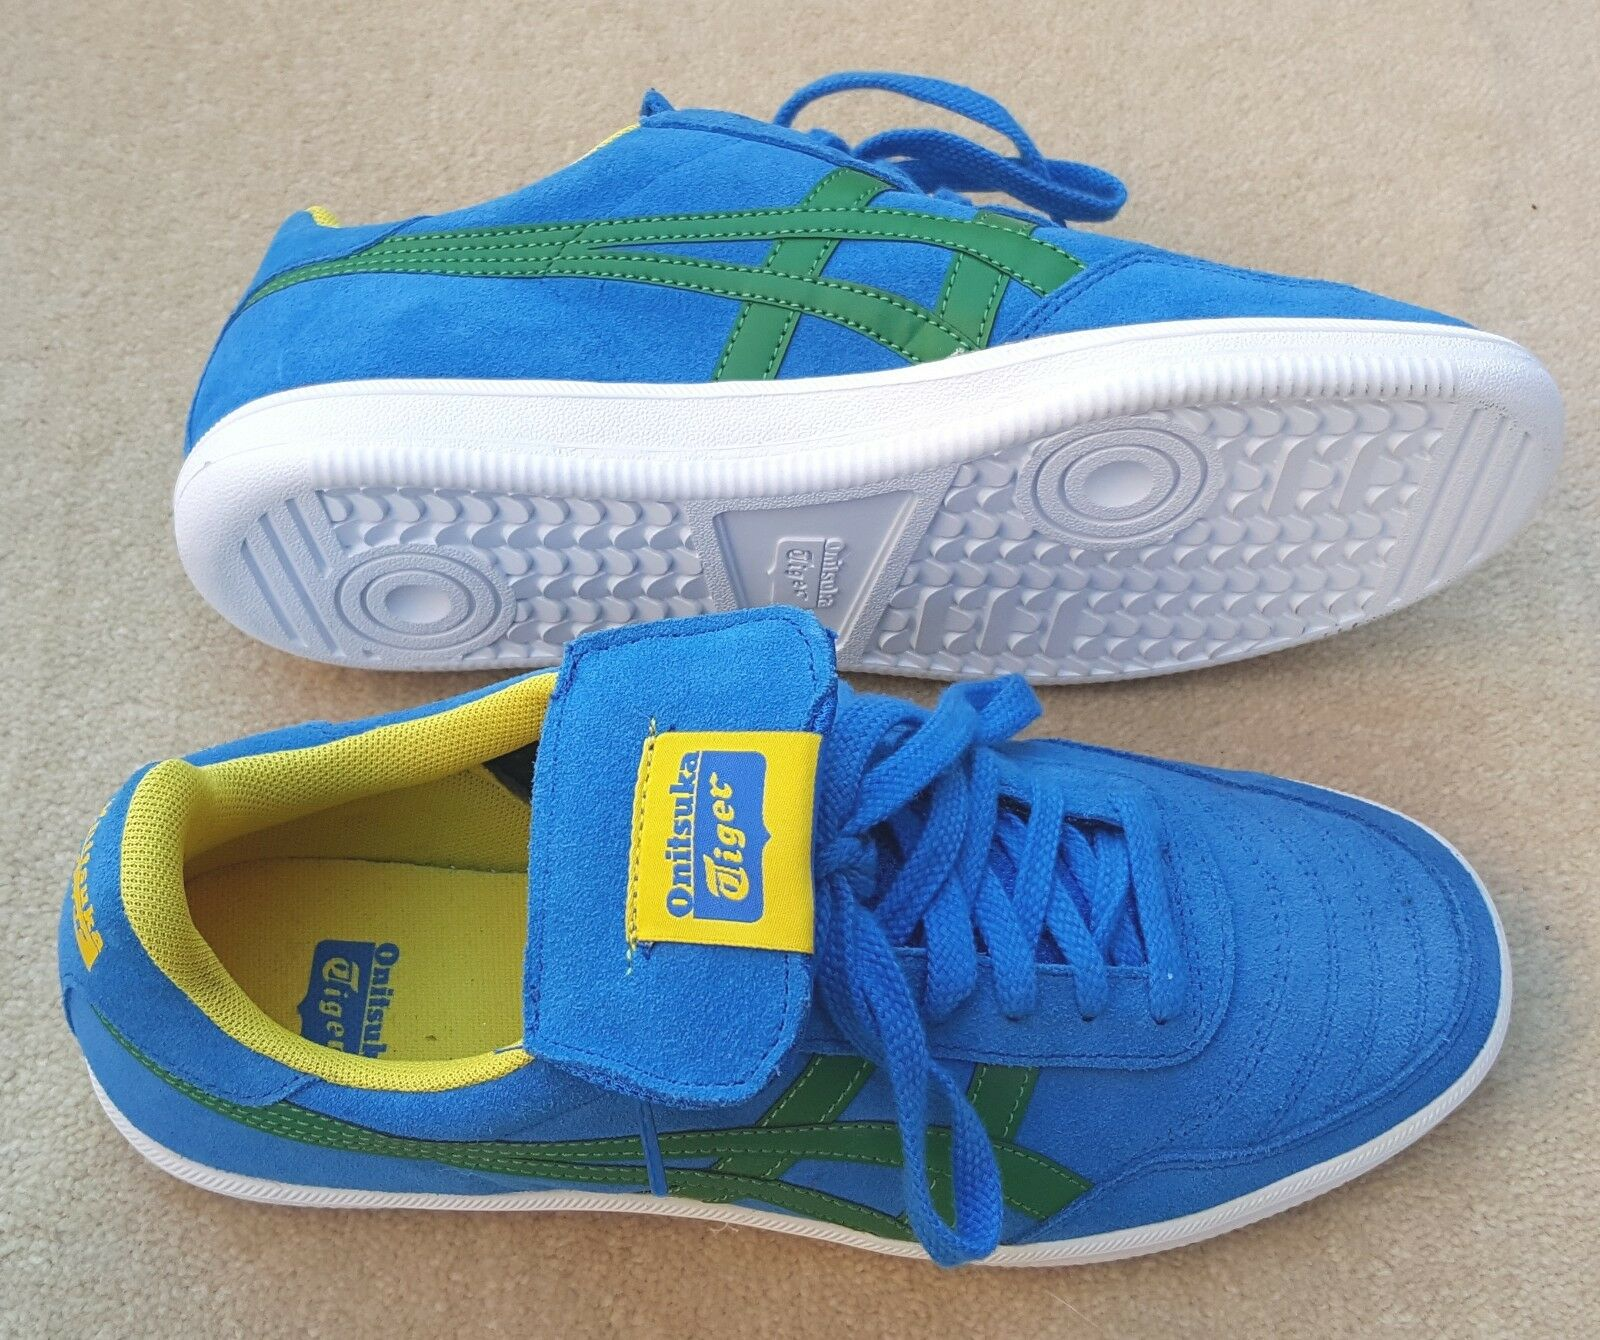 ASICS Onitsuka Tiger Suede Trainers Sports shoes bluee White Yellow